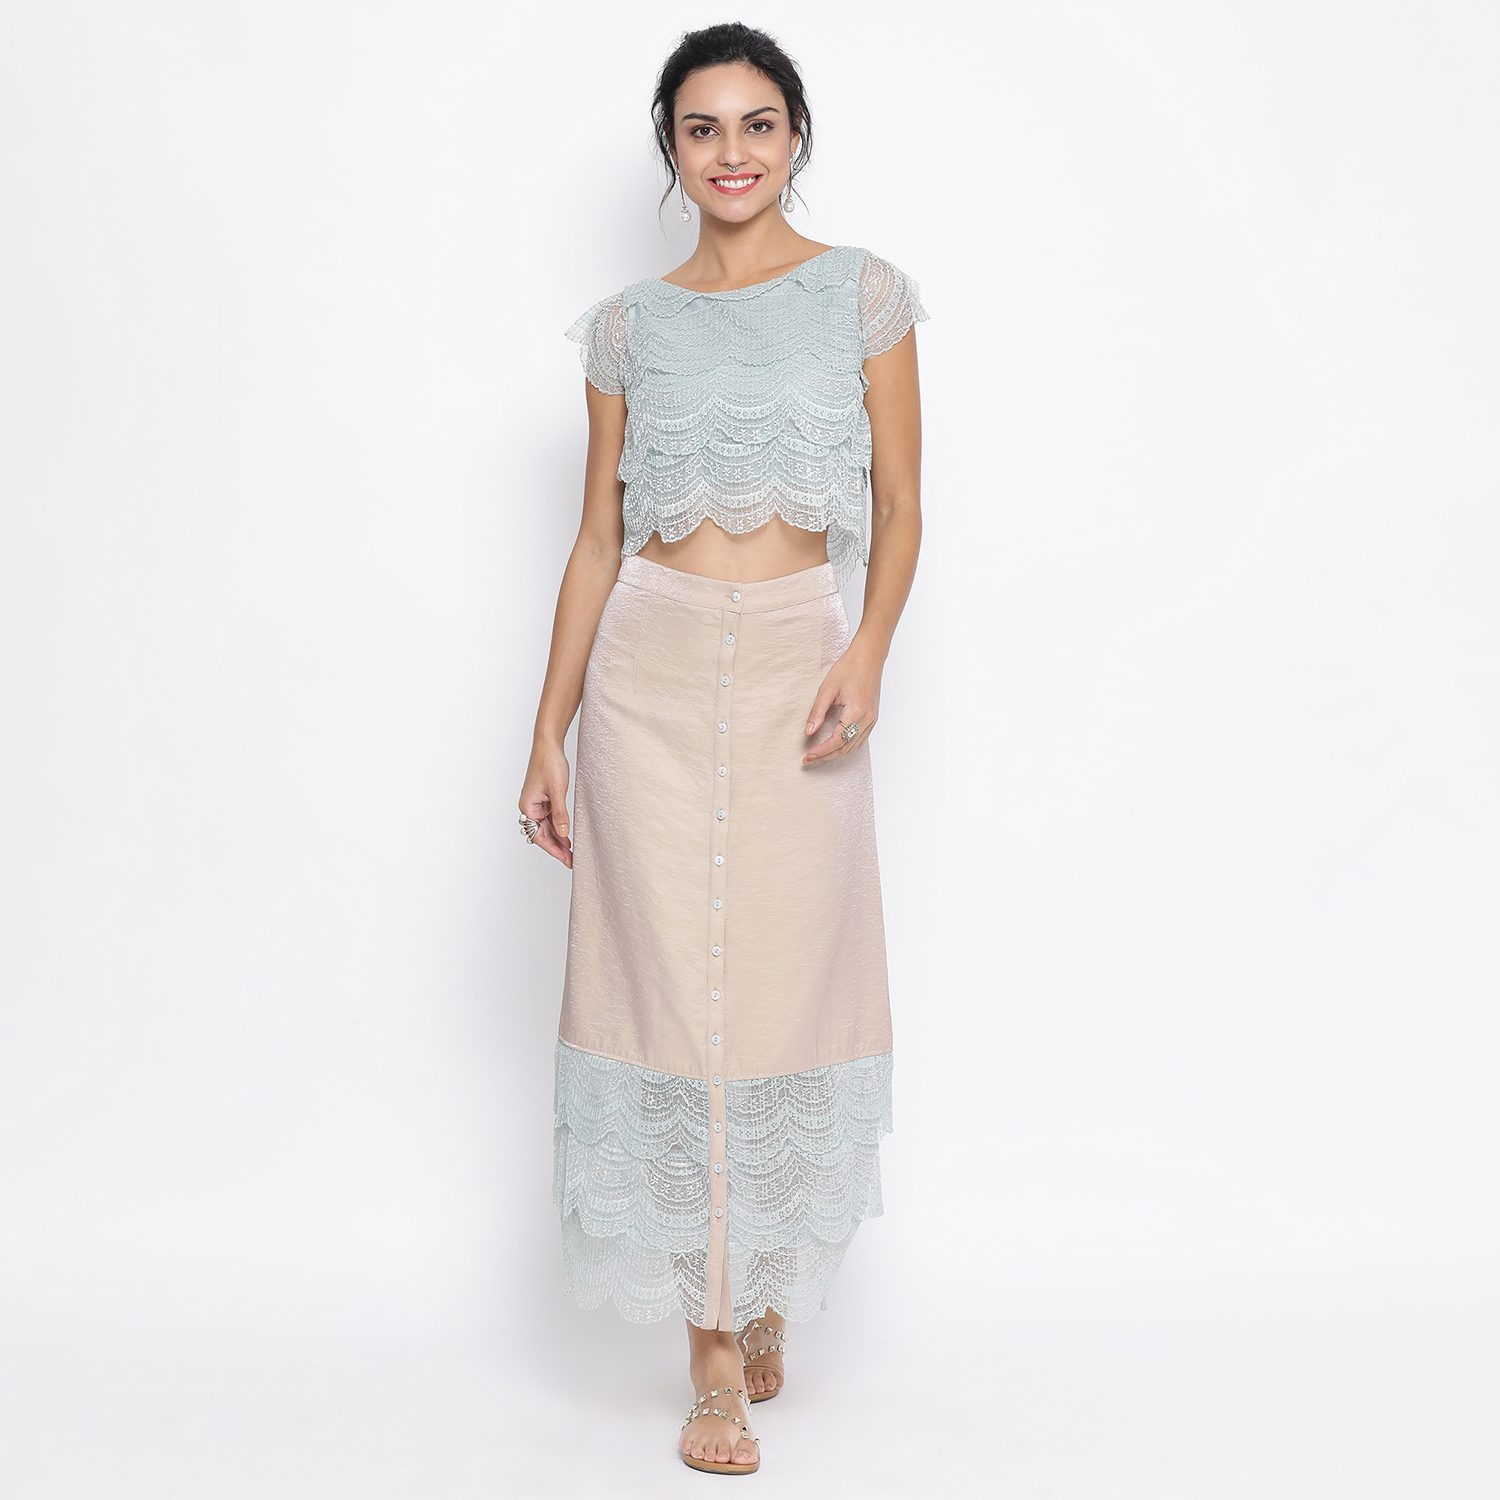 Buy Beige Skirt With Scallop Lace At Hem For Women